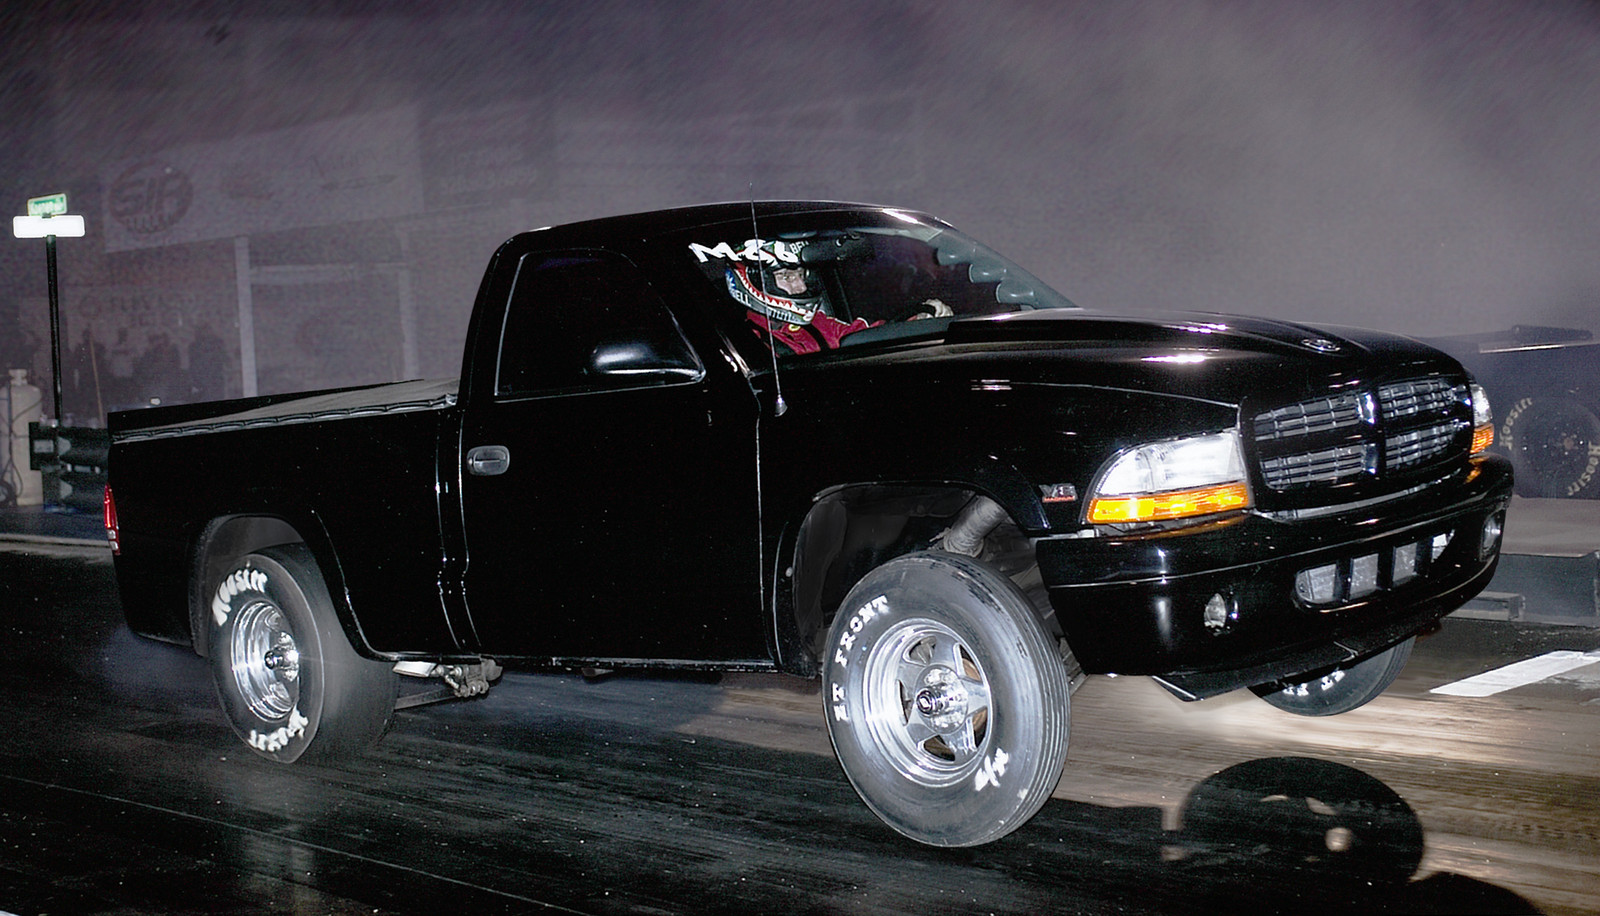 Dodge Dakota on Dodge Dakota Drag Truck